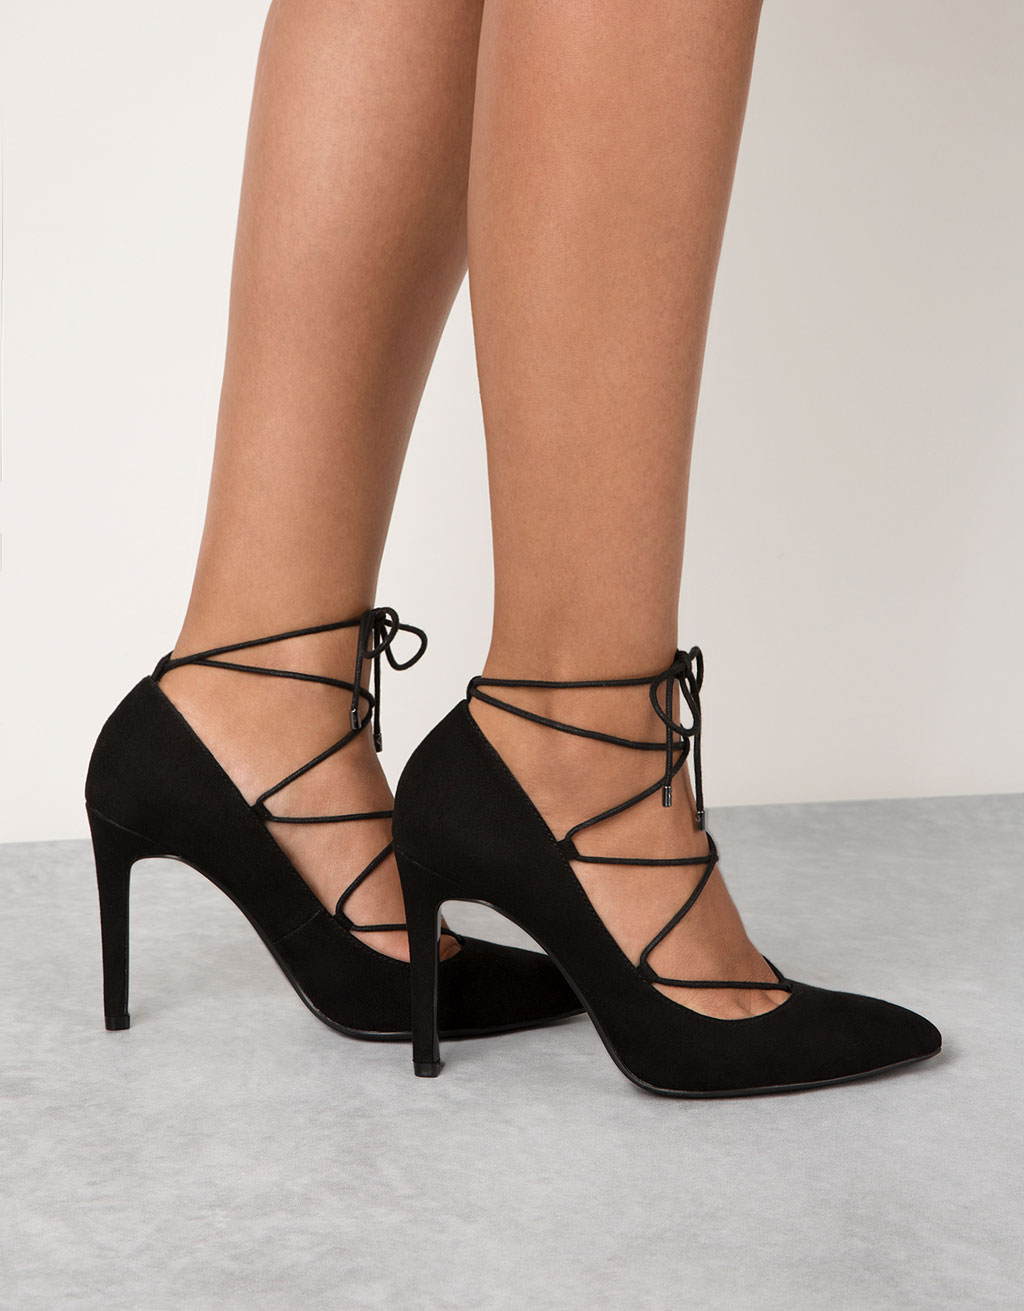 Fine heel, lace-up pumps